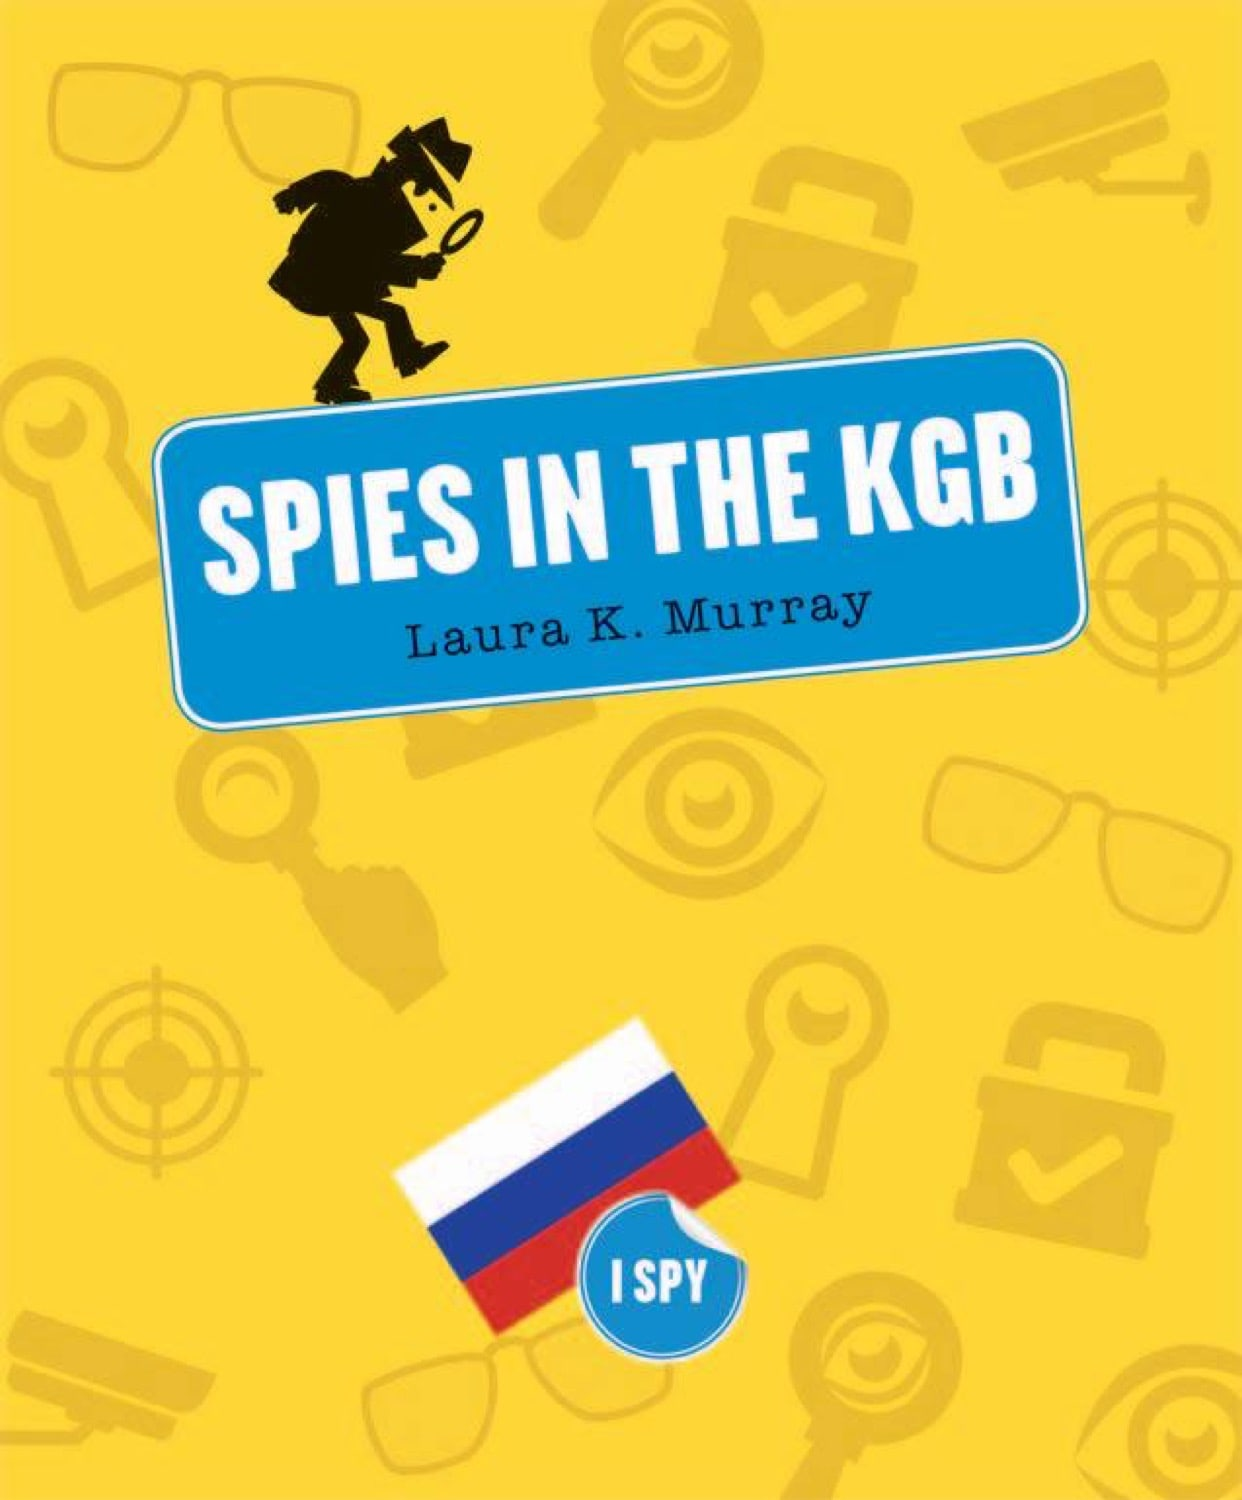 I Spy: Spies in the KGB